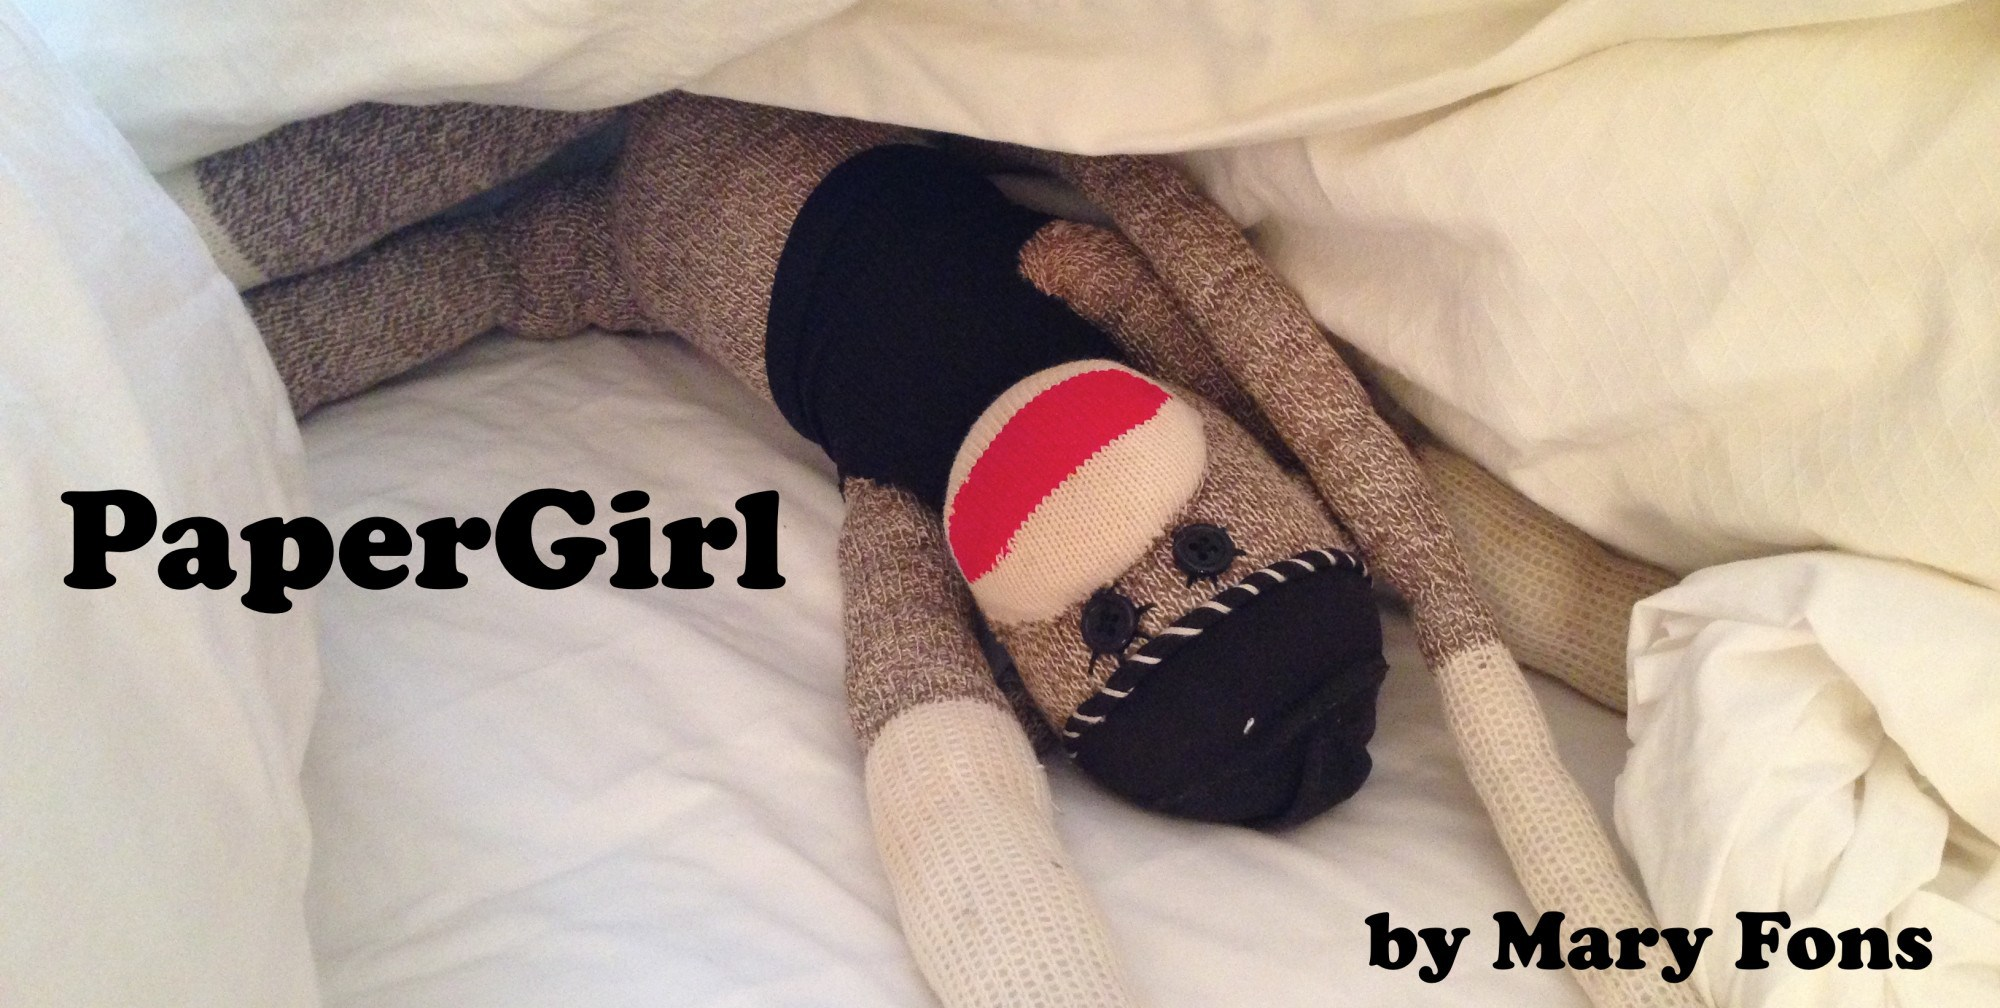 PaperGirl Blog by Mary Fons